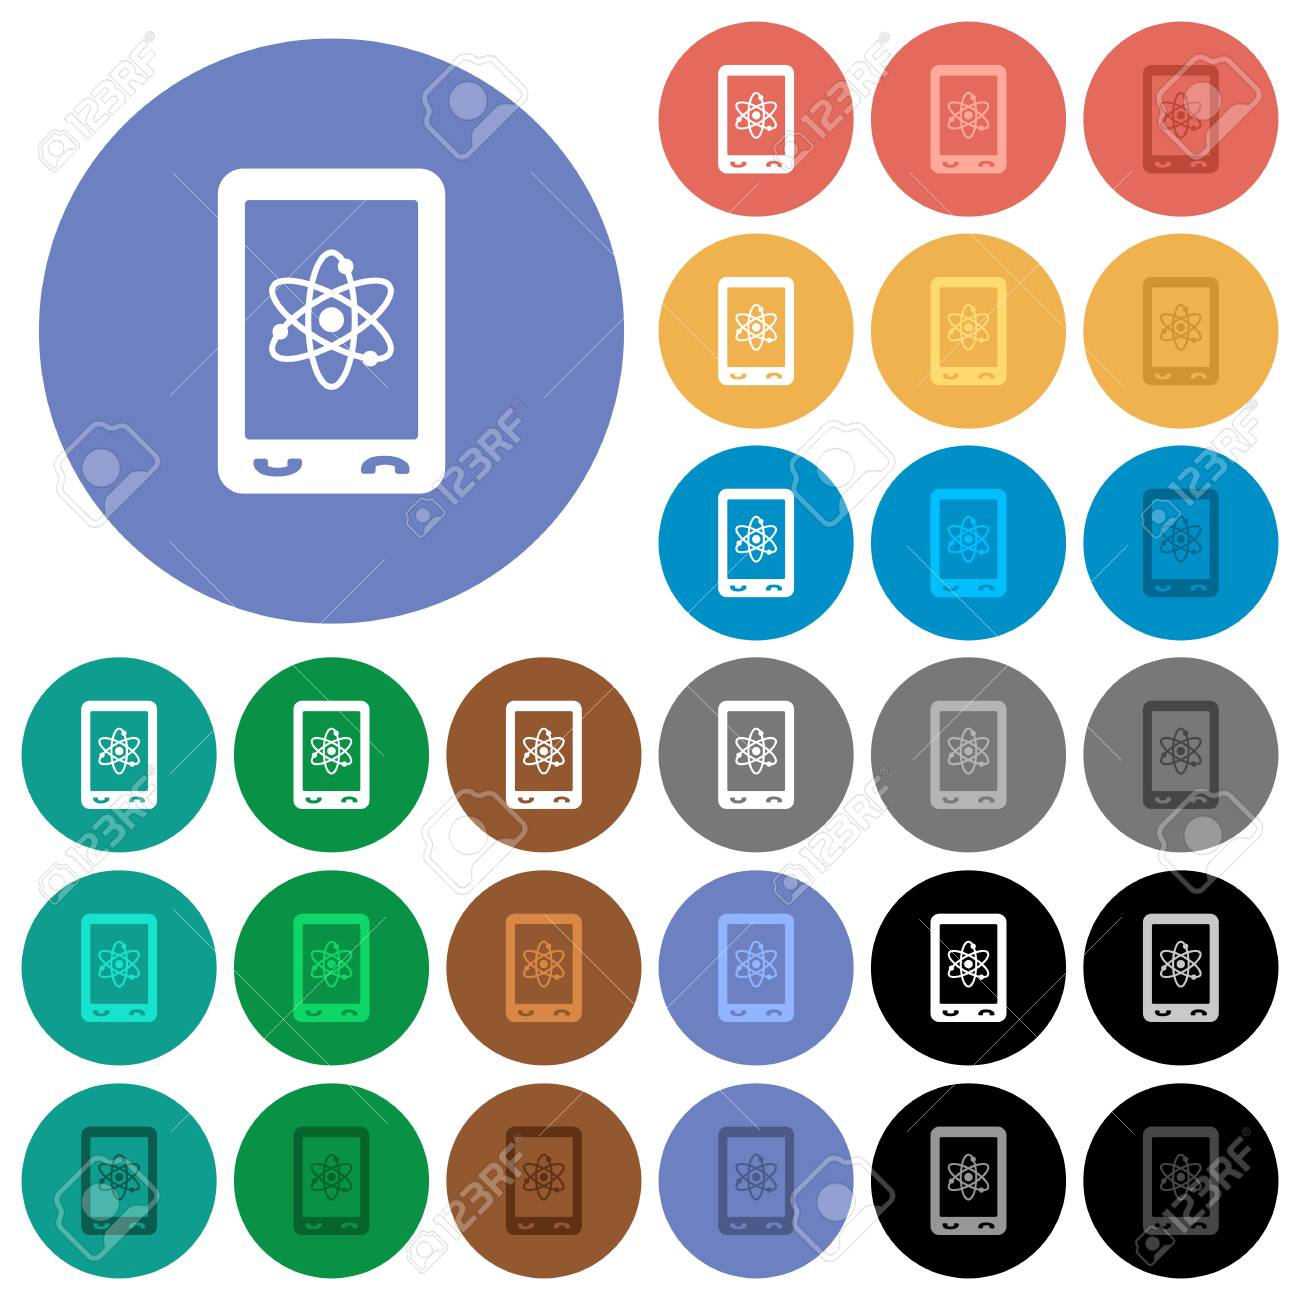 Mobile Science Multi Colored Flat Icons On Round Backgrounds Included White Light And Dark